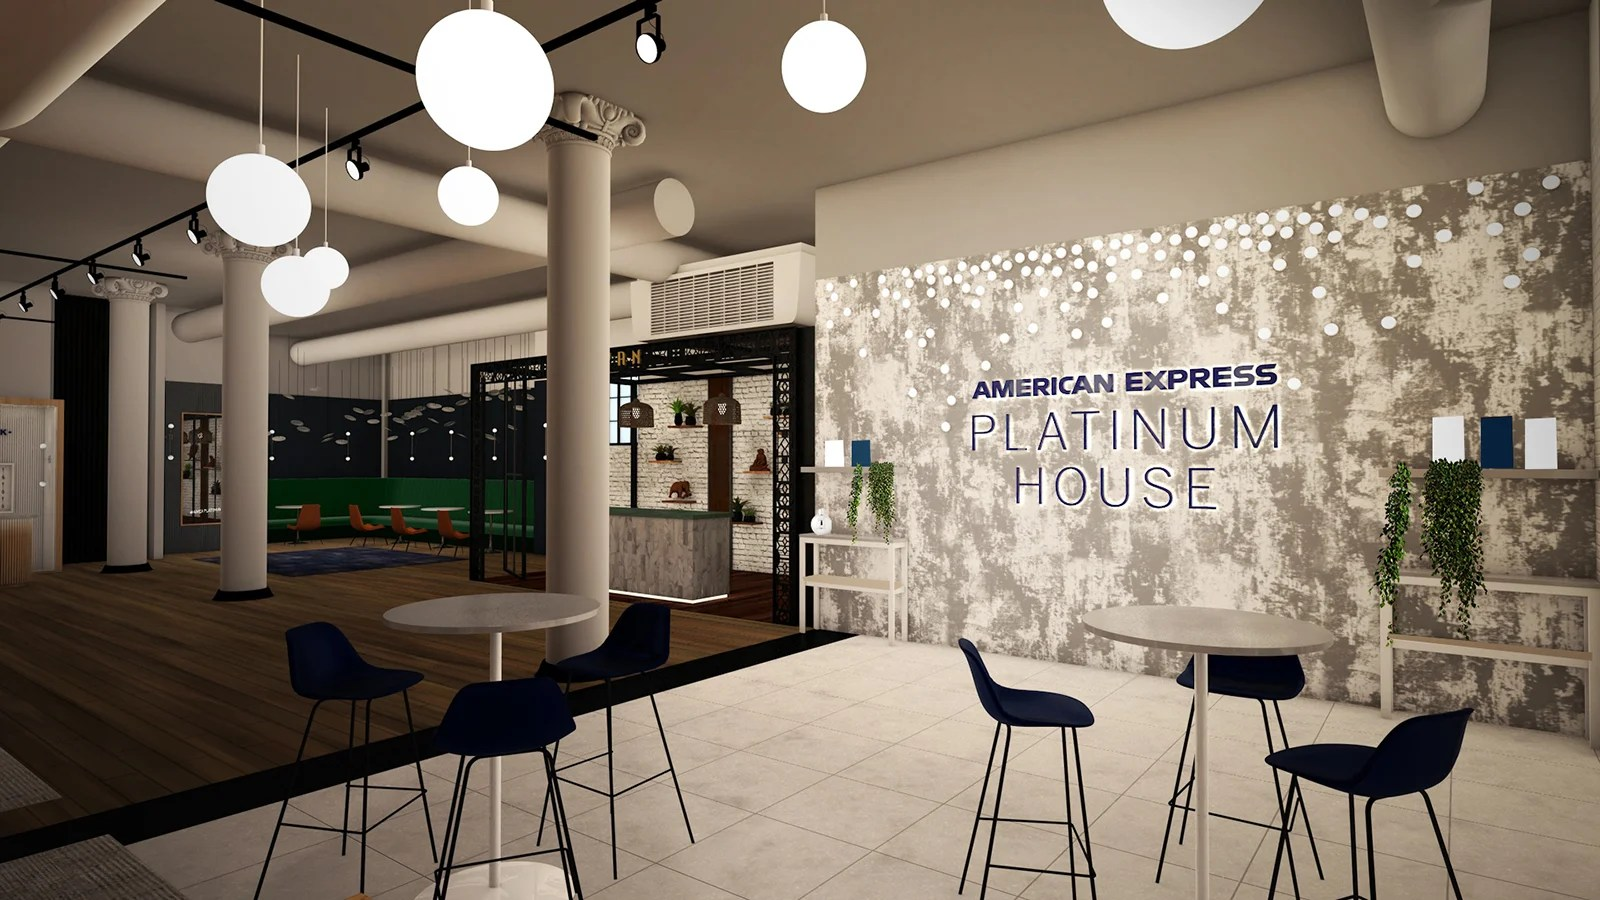 Amex is opening a holiday Platinum House in NYC with free drinks and food all weekend